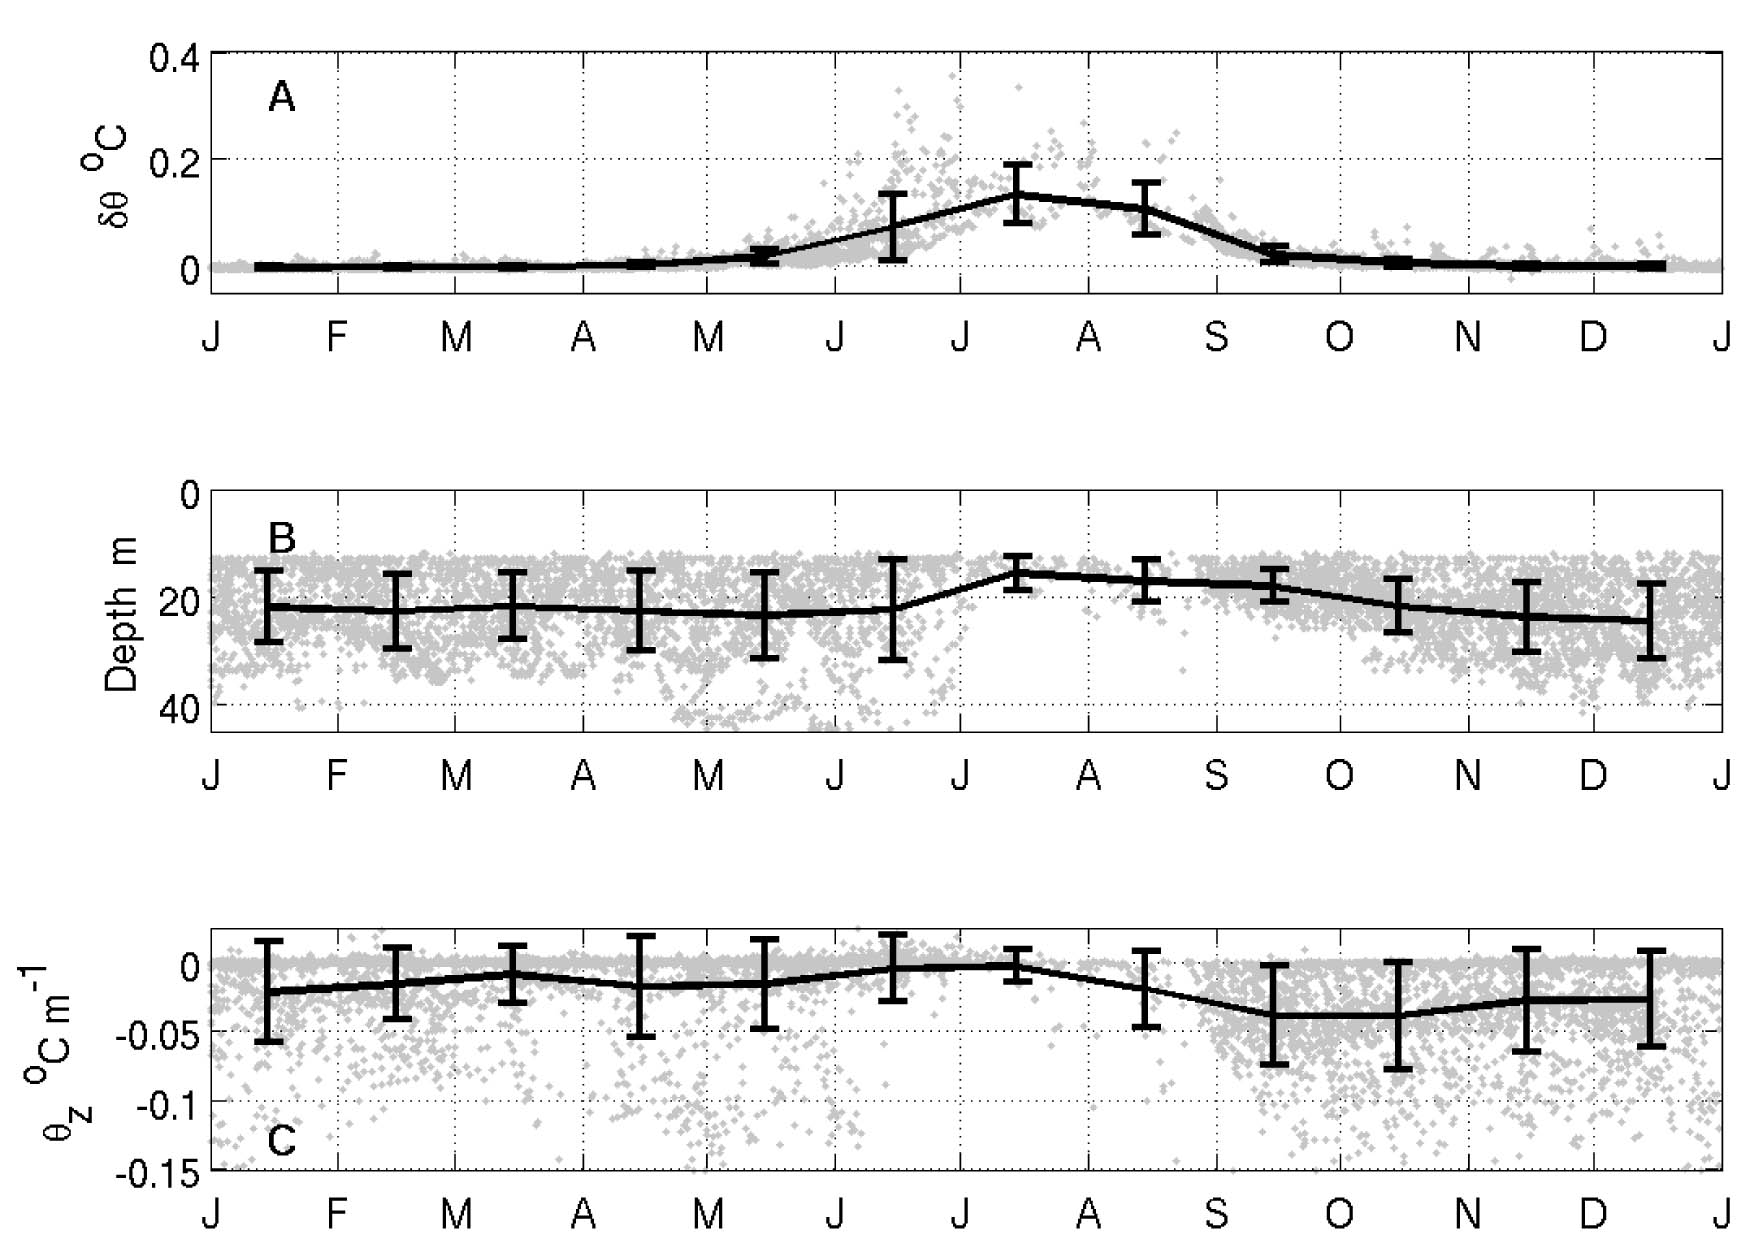 Mean seasonal cycle of central Canada Basin mixed layer temperature departure from the local freezing temperature (top), mixed layer depth (middle), and vertical potential temperature gradient in the 5 meter interval below the mixed layer base (bottom) based on approximately 5800 ITP profiles